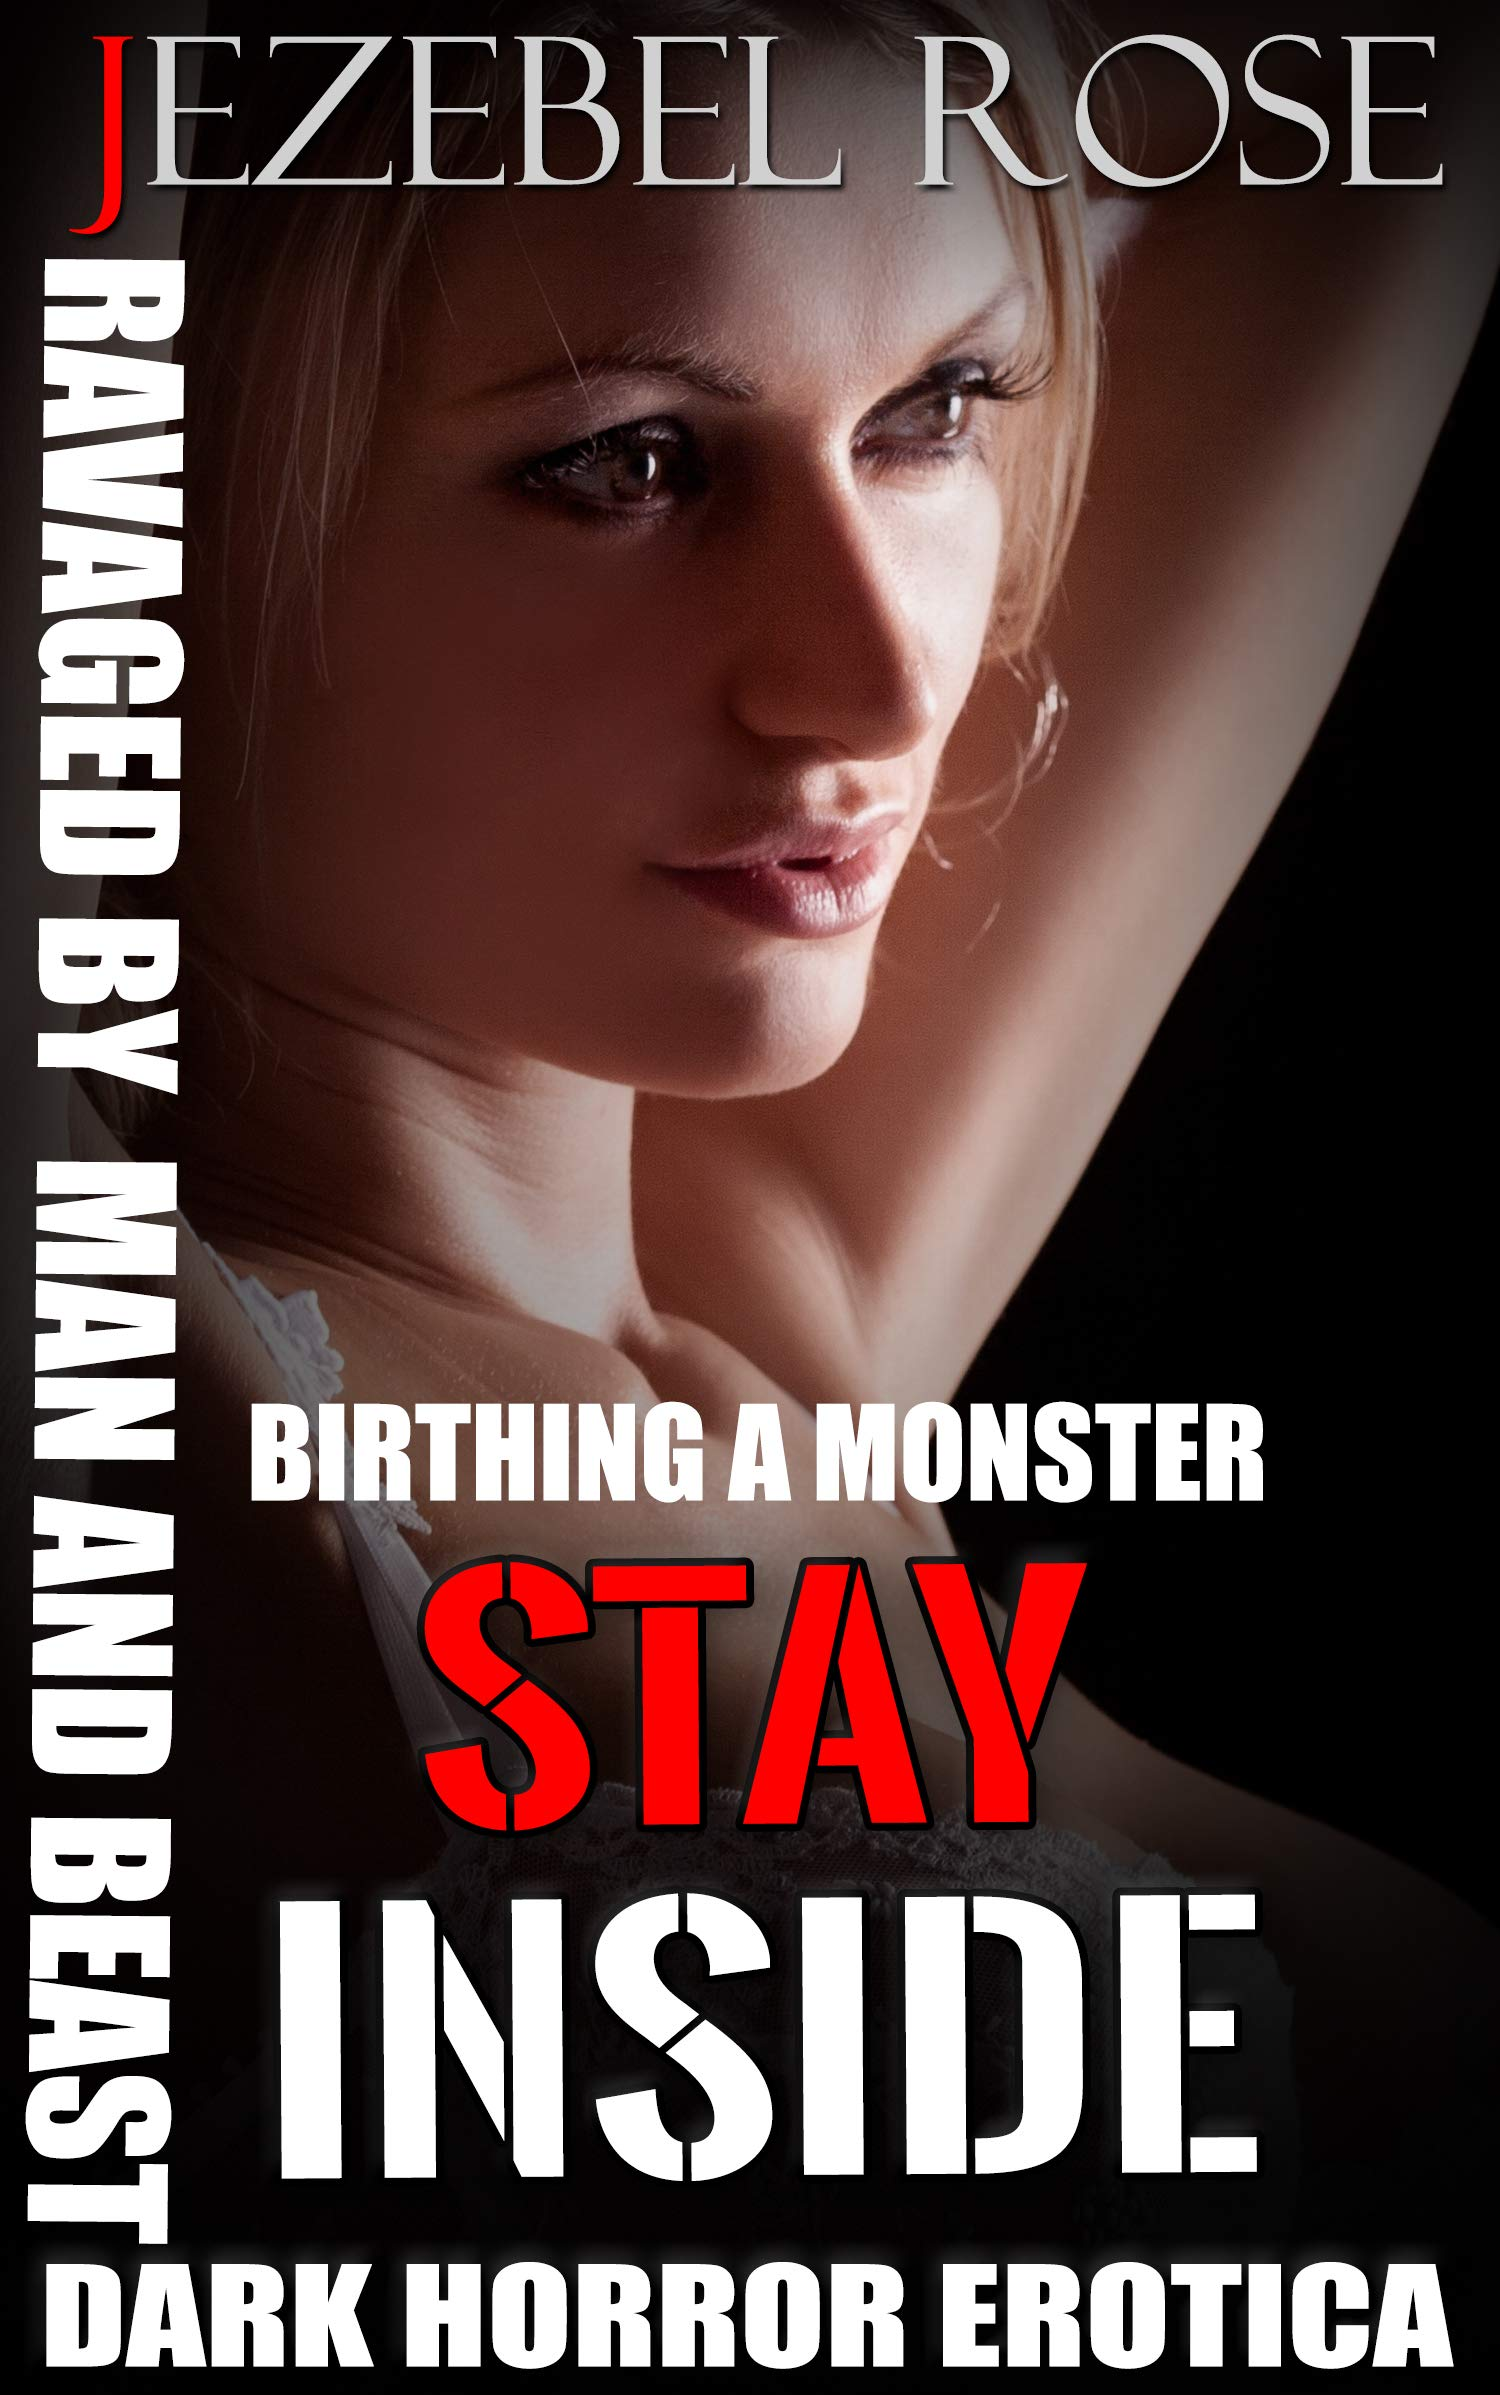 STAY INSIDE: RAVAGED BY MAN AND MONSTER AT THE SAME TIME (DARK HORROR EROTICA Book 1)